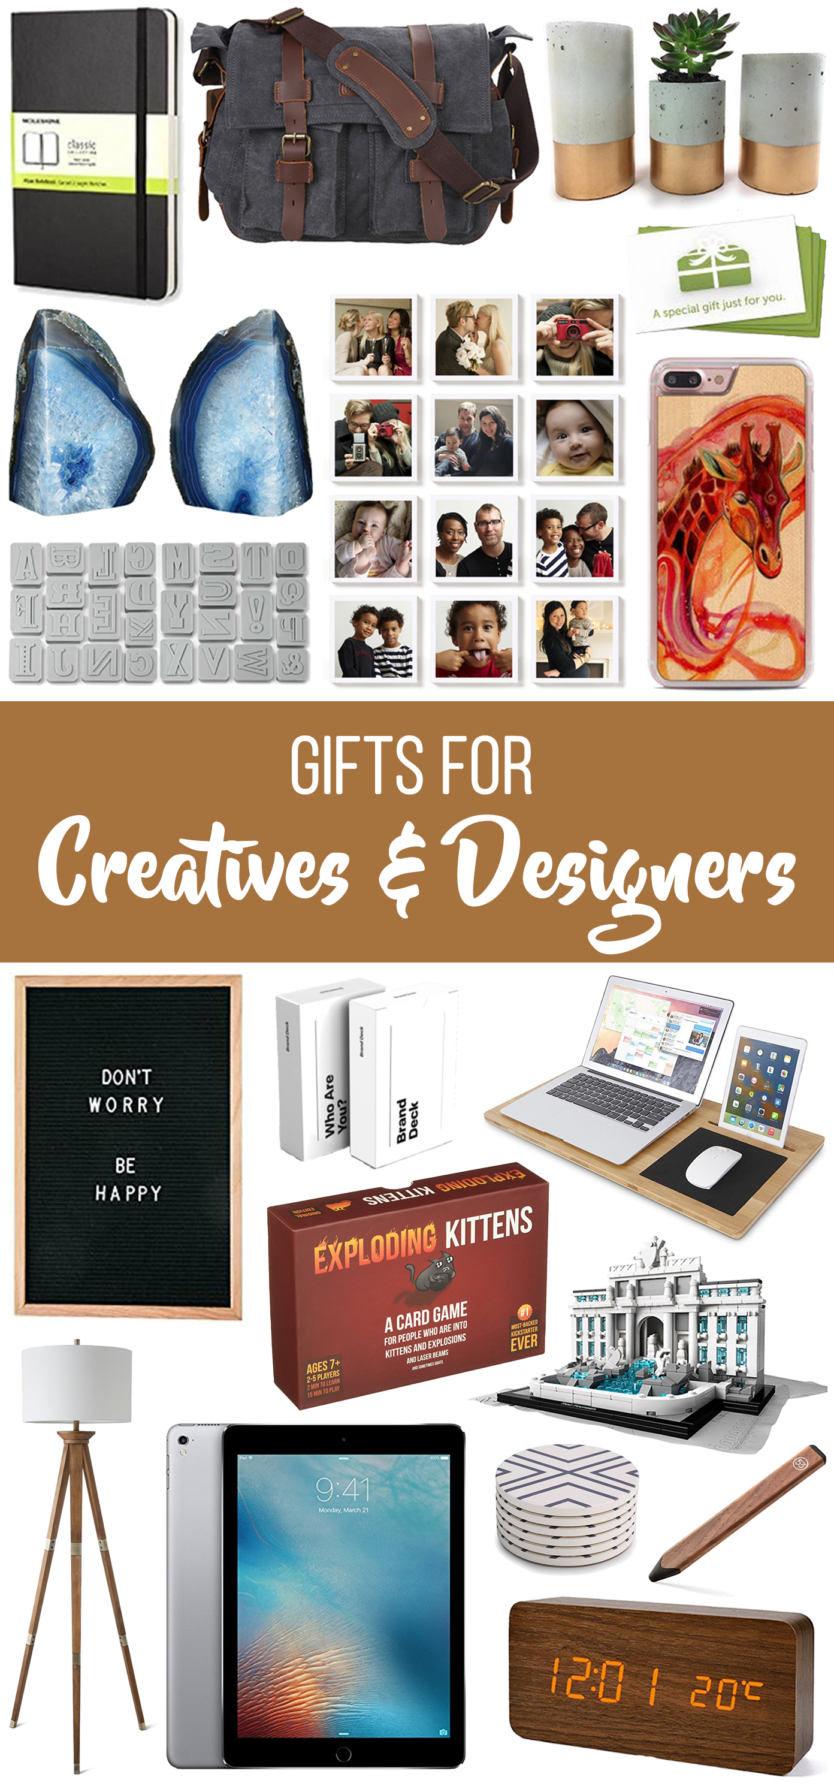 We all know that Christmas shopping can be overwhelming, but these holiday gift guides should help make the job just a little bit easier.